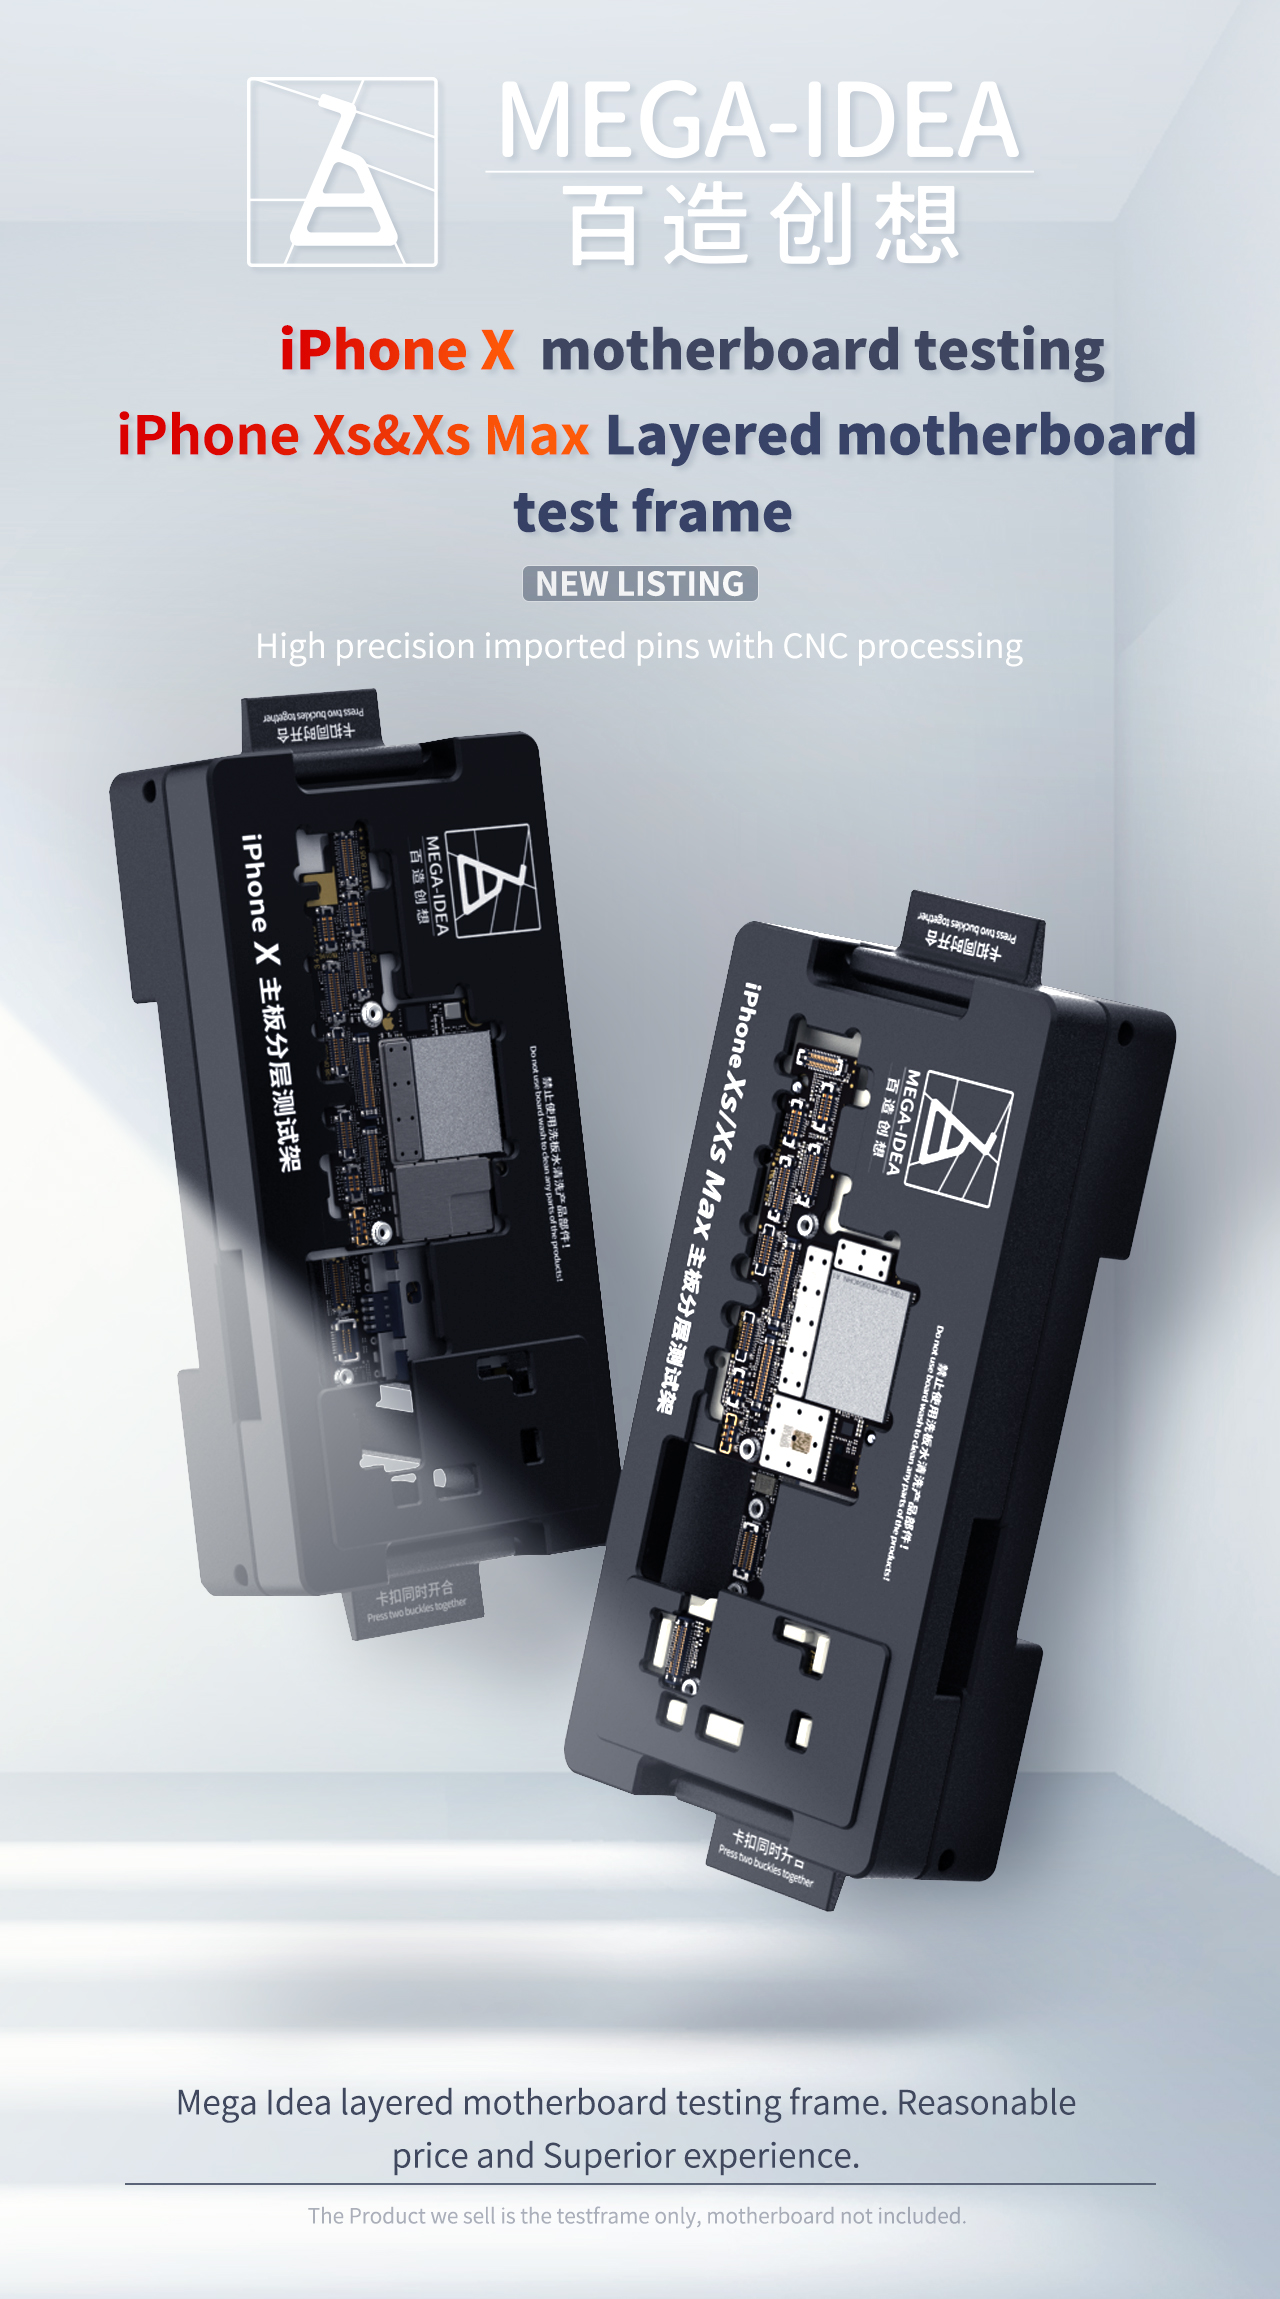 iSocket MEGA-IDEA from QianLi Motherboard Testing Device for iPhone X/XS/XSMAX